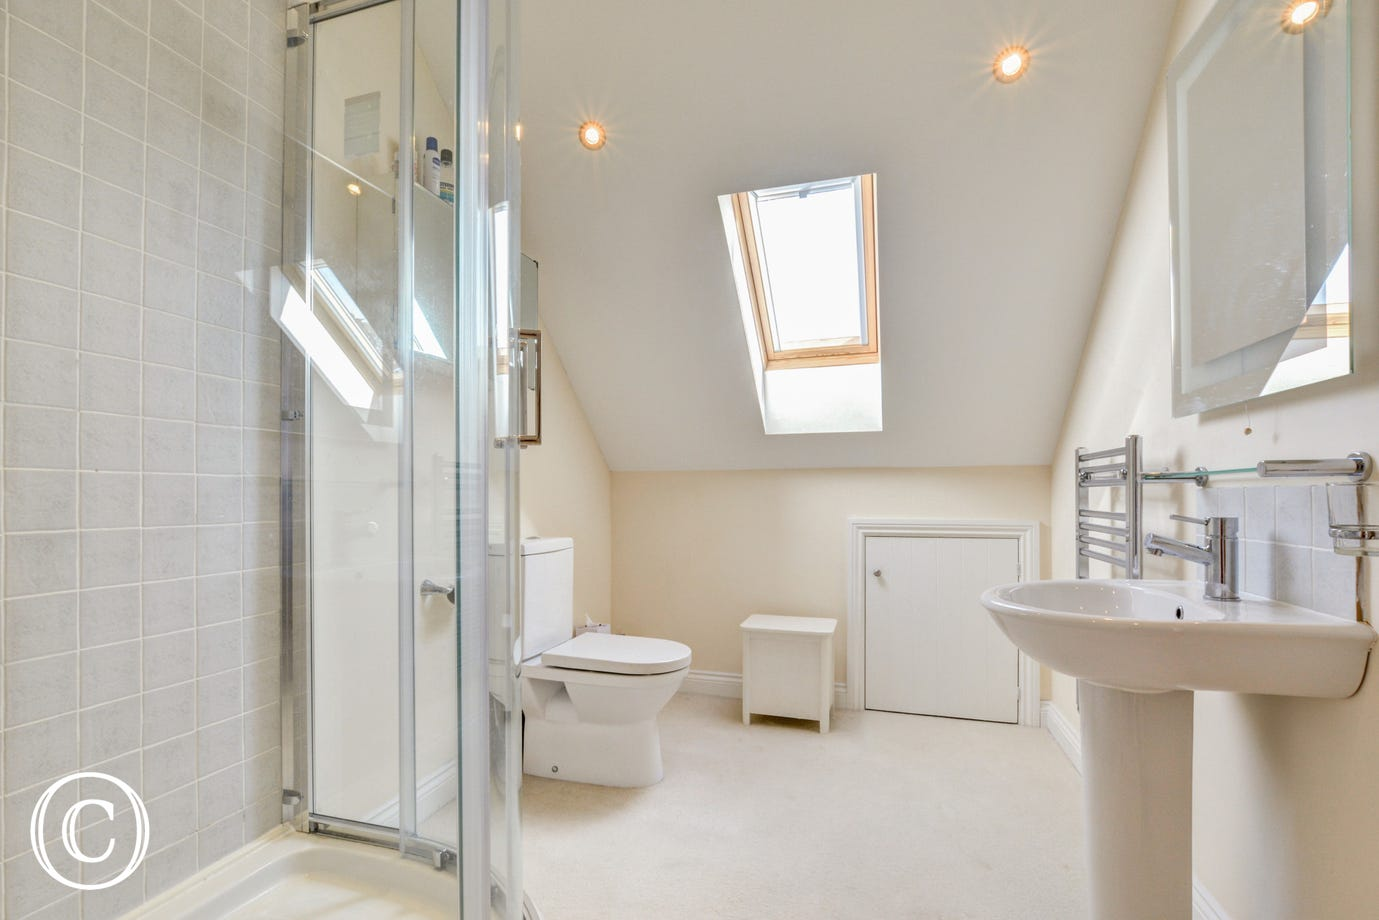 A shower cubicle, toilet & wash basin in this spacious en-suite